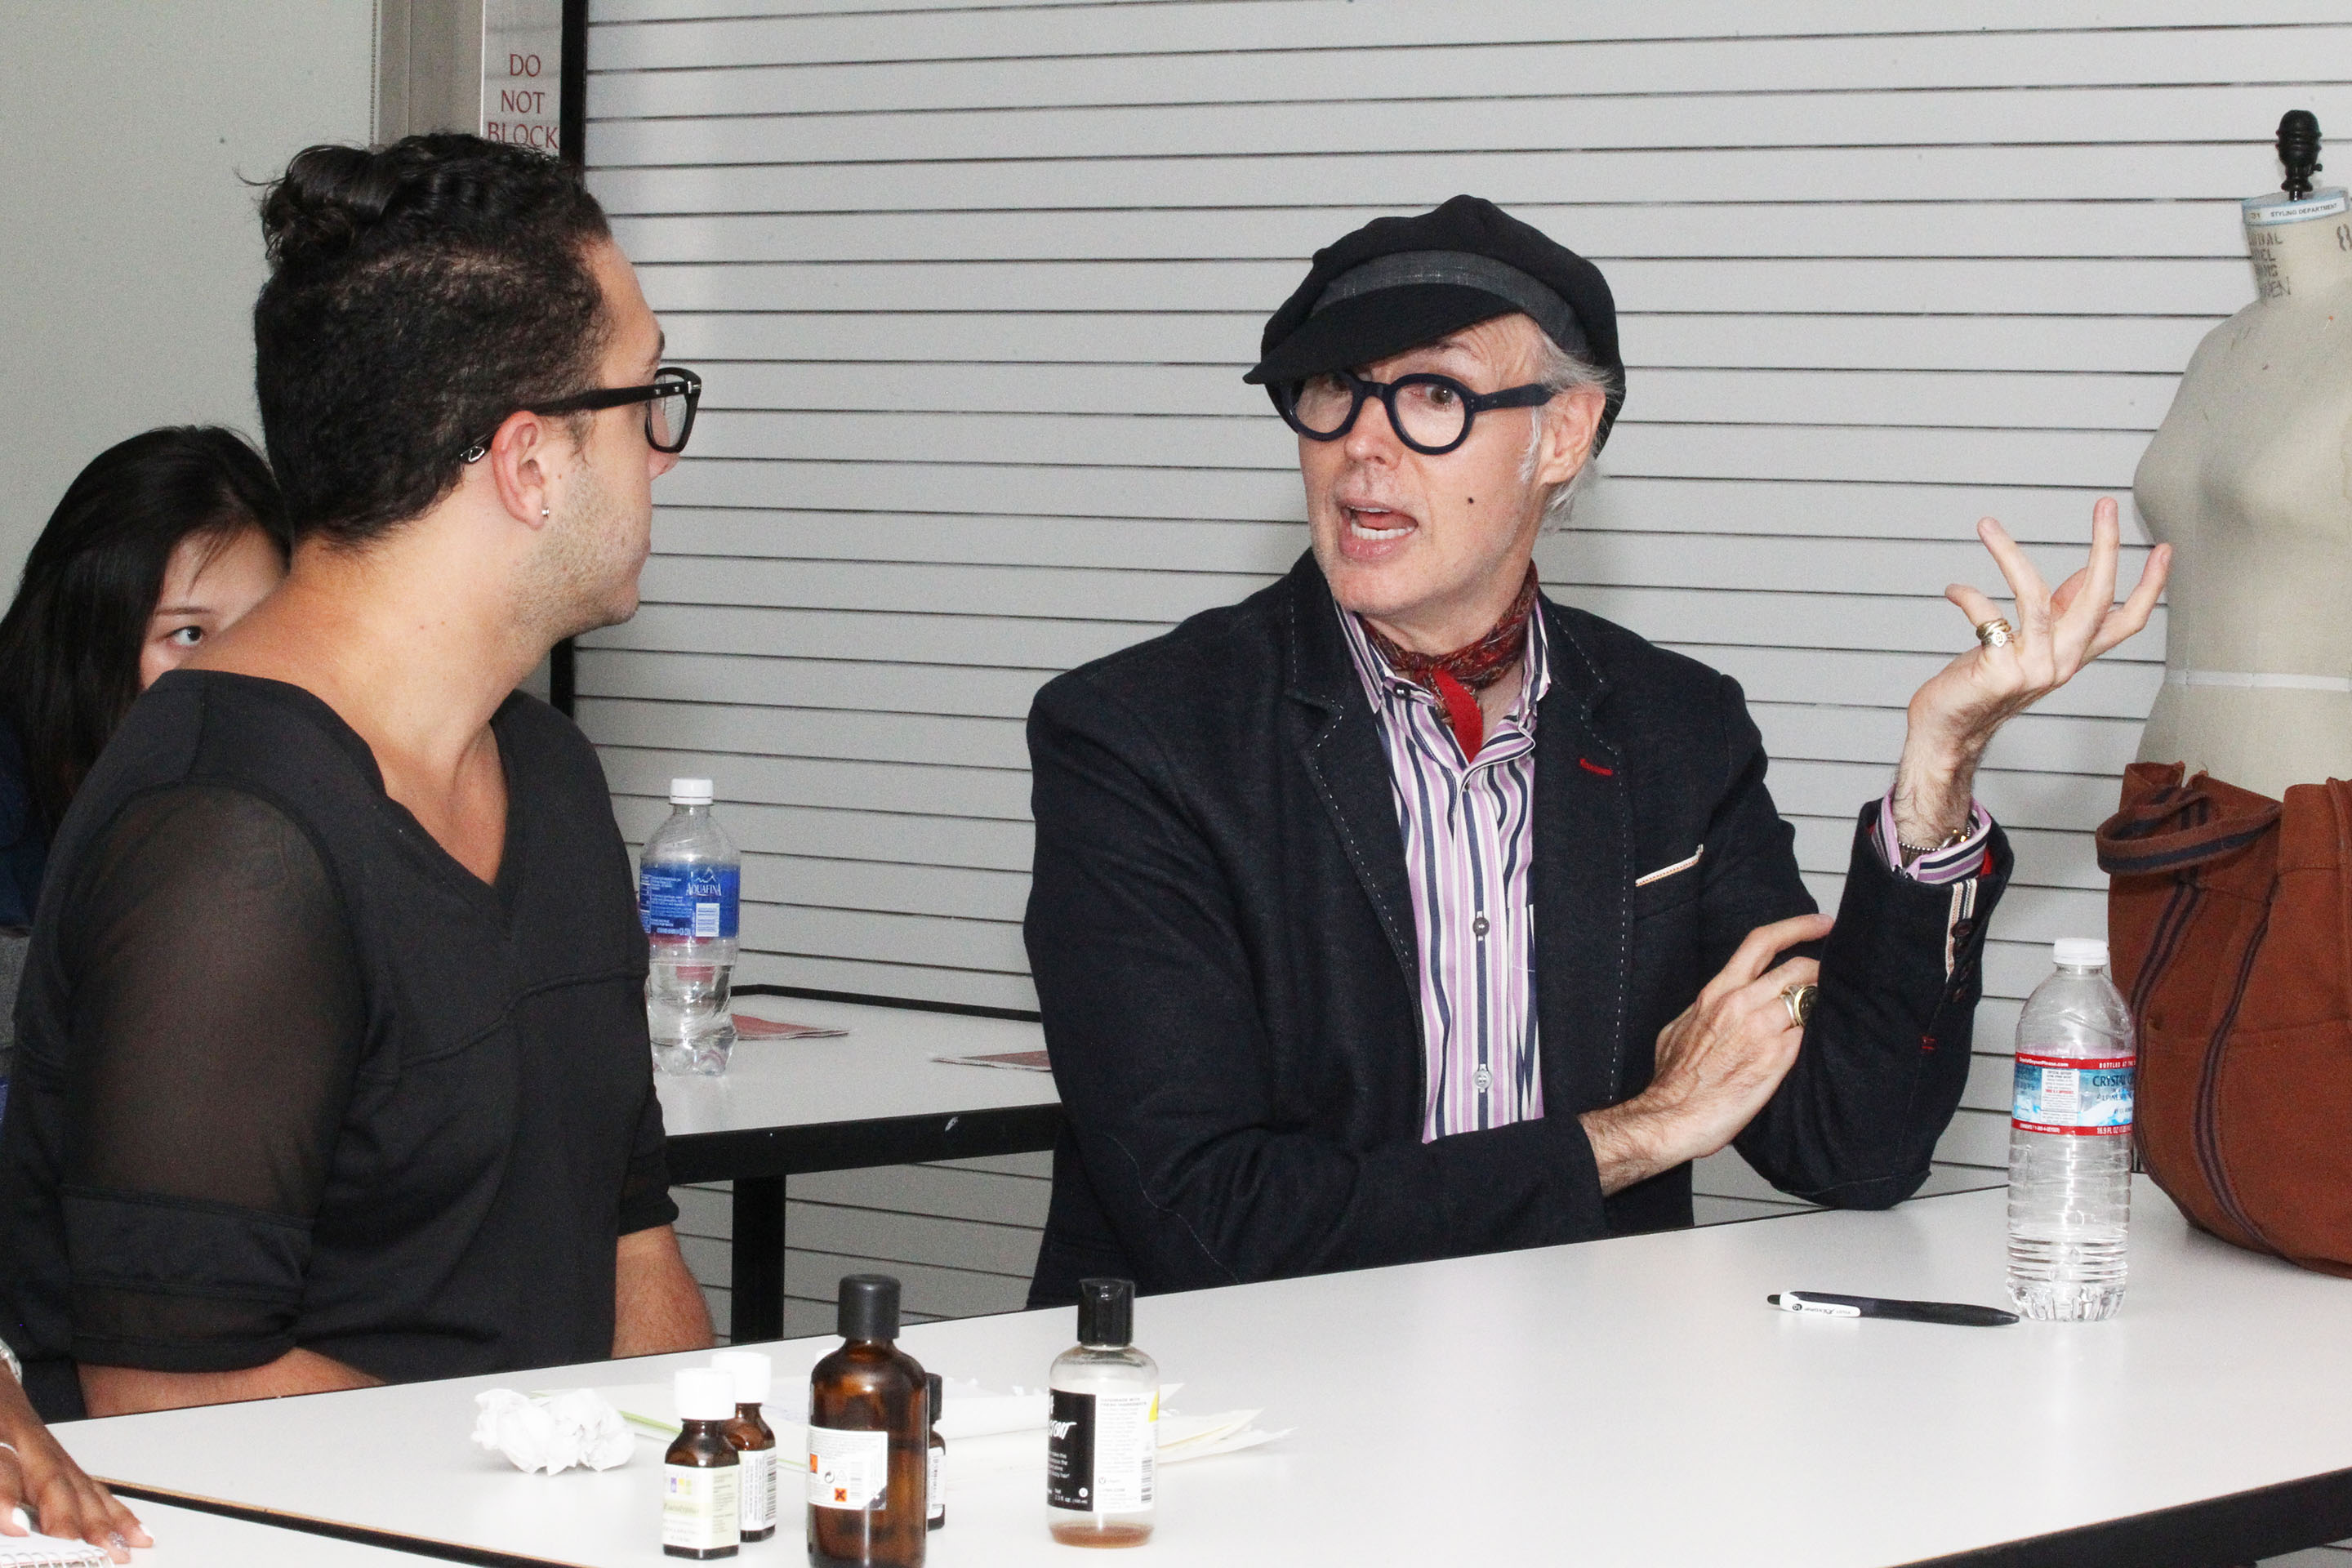 Dandy Patrick McDonald gives feedback to fashion merchandising students on their group project. Photo by Bob Toy.